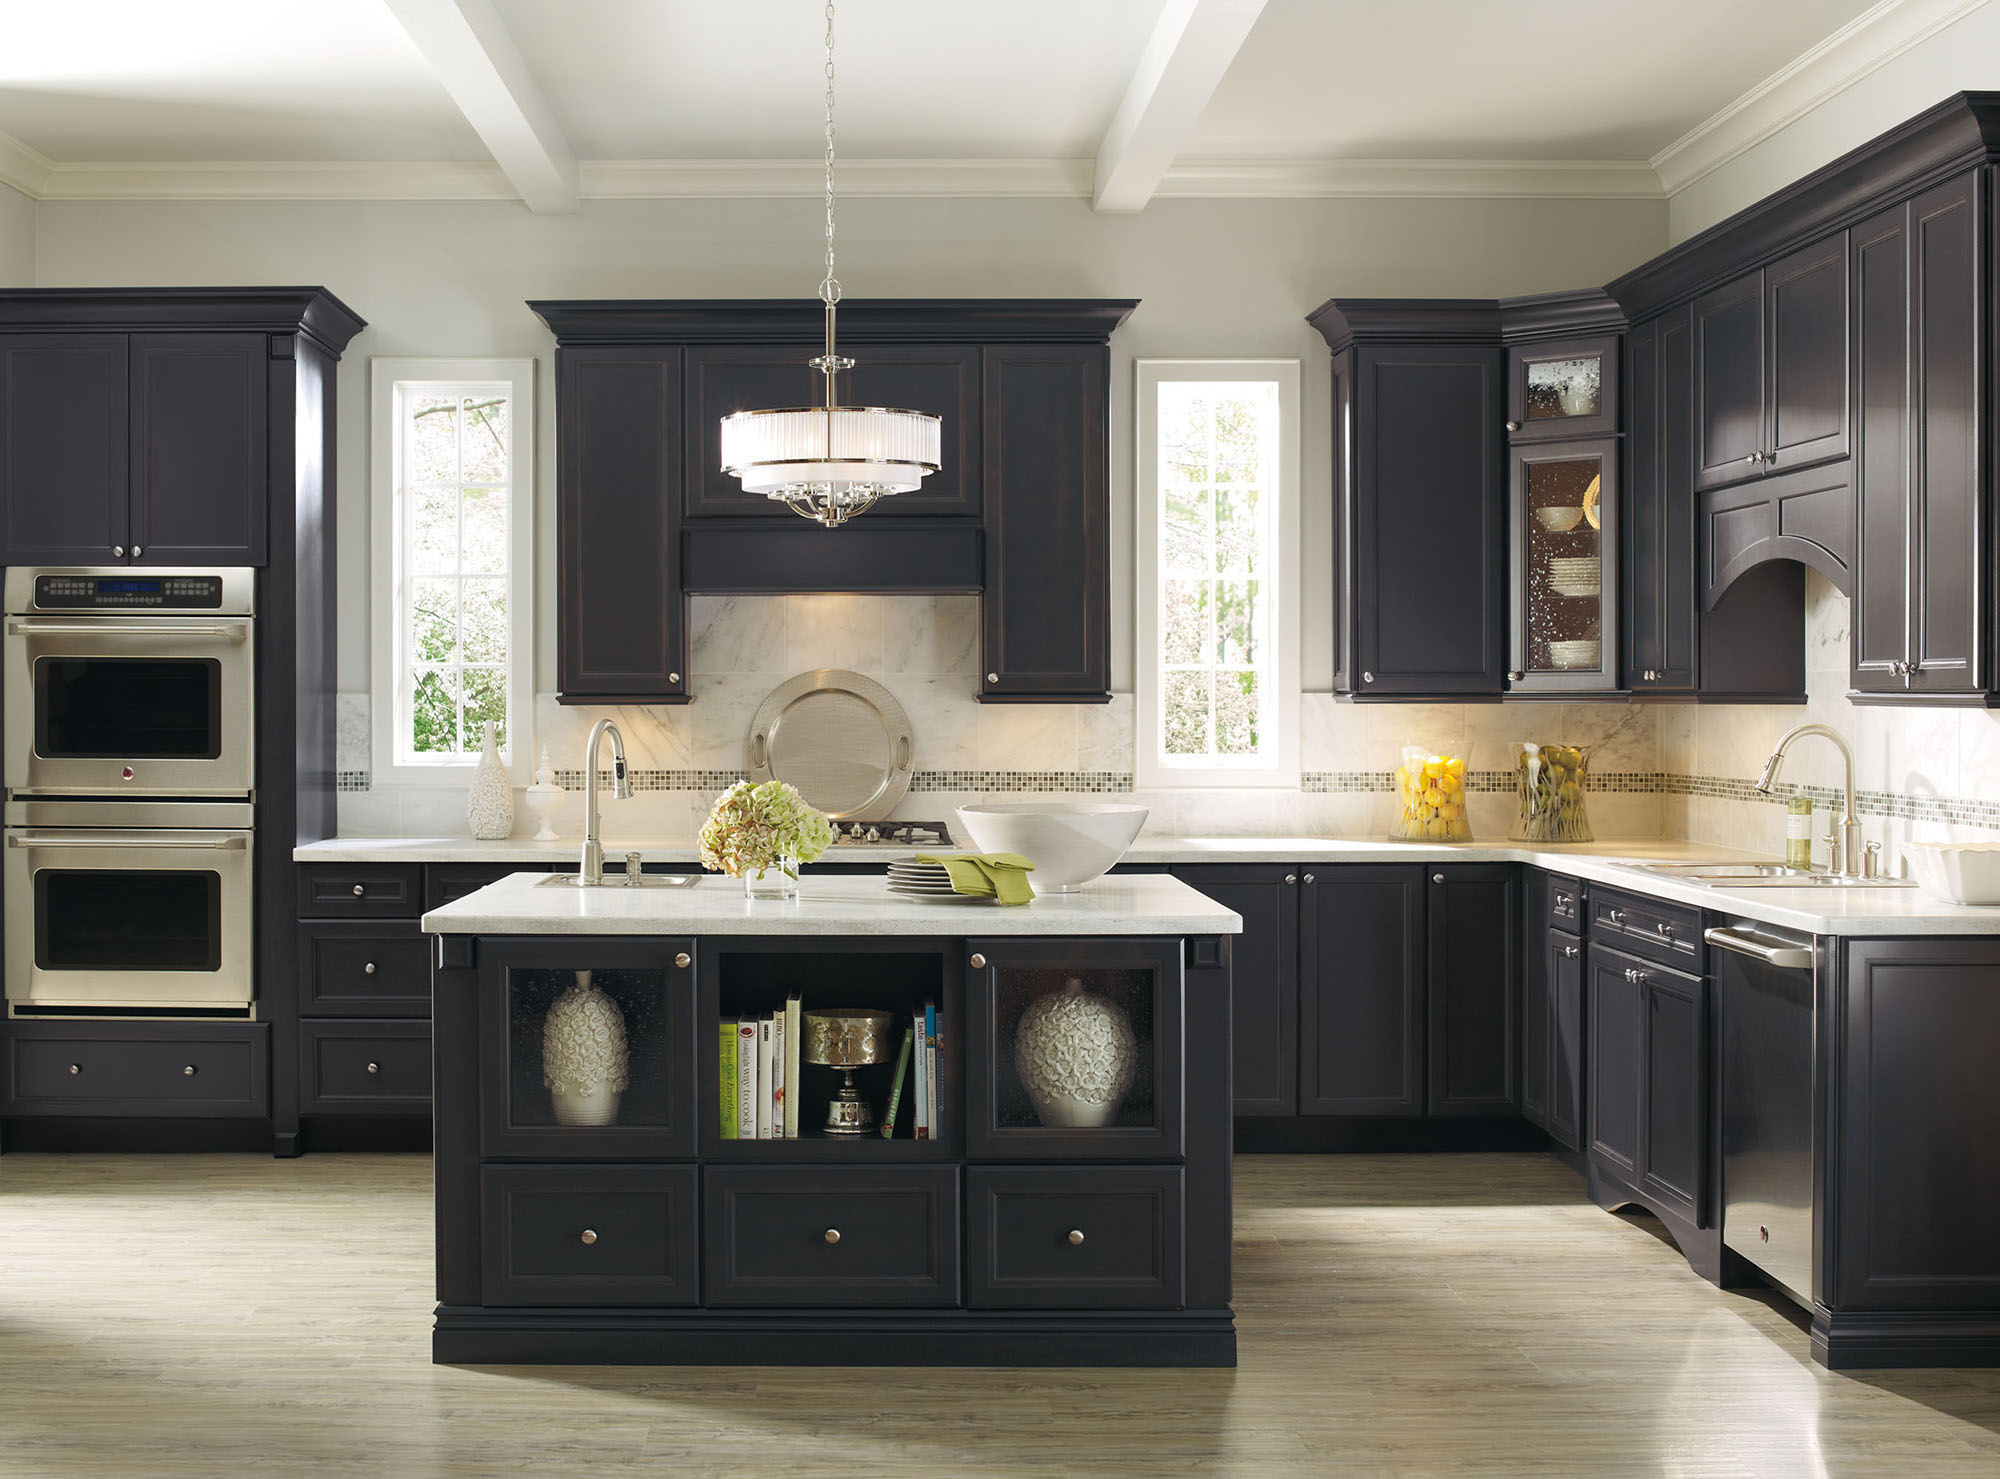 black Thomasville Cabinets with white countertop